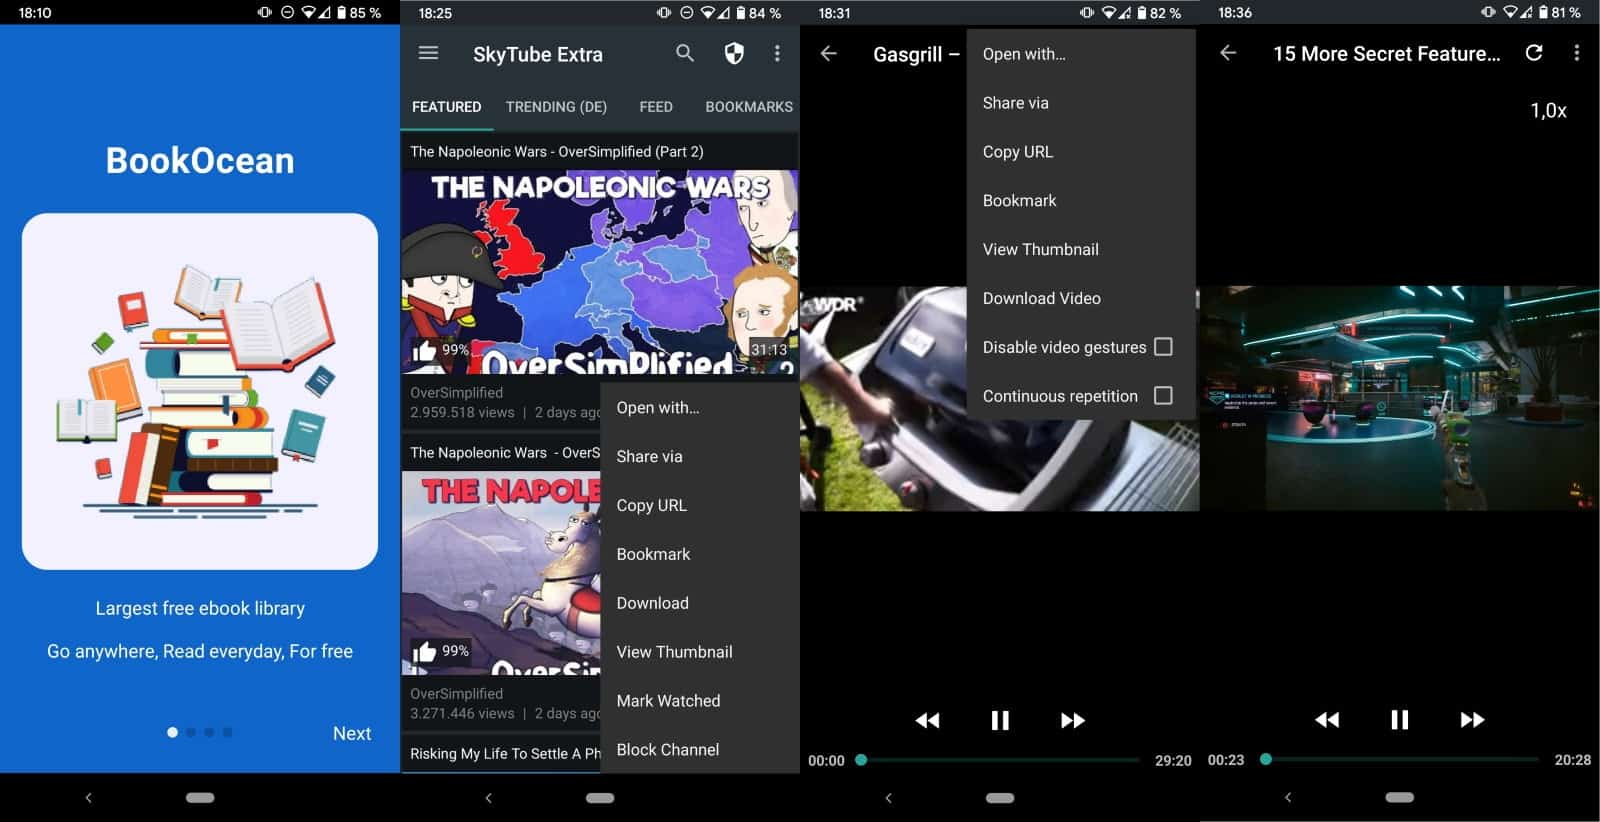 skytube youtube app android open source